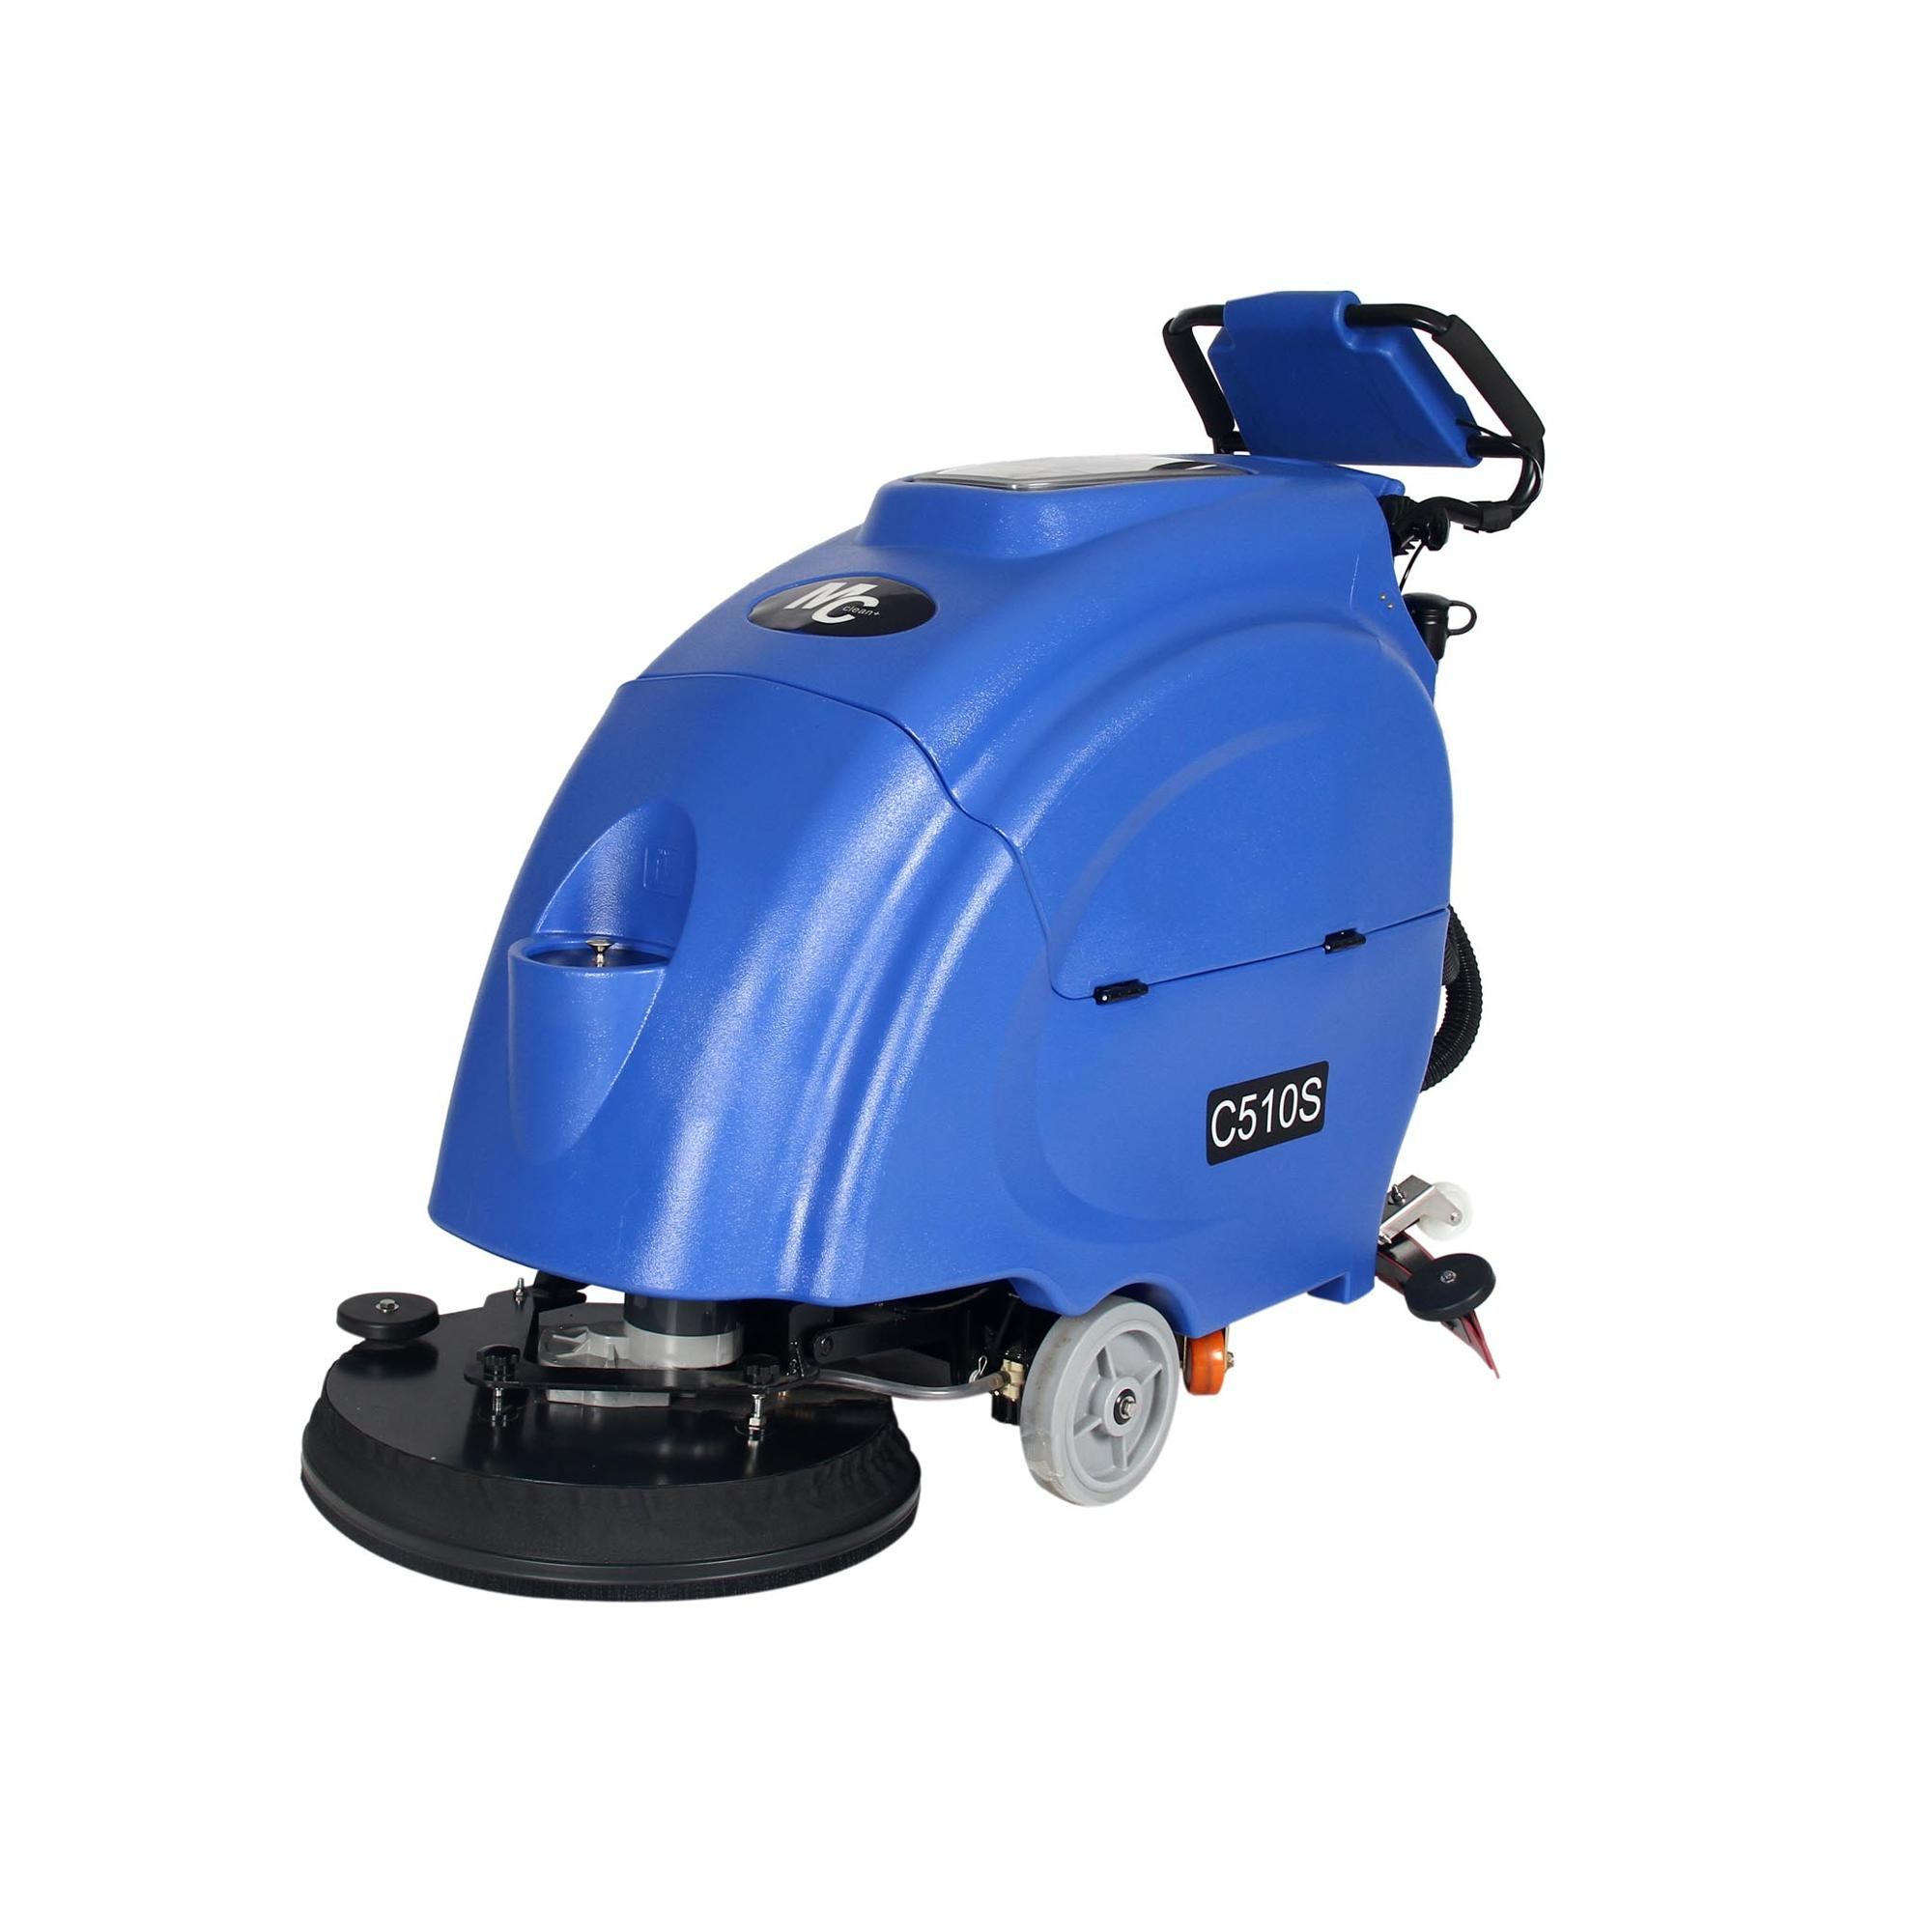 C510s Industrial Ceramic Tile Floor Cleaning Machine With Big Tank